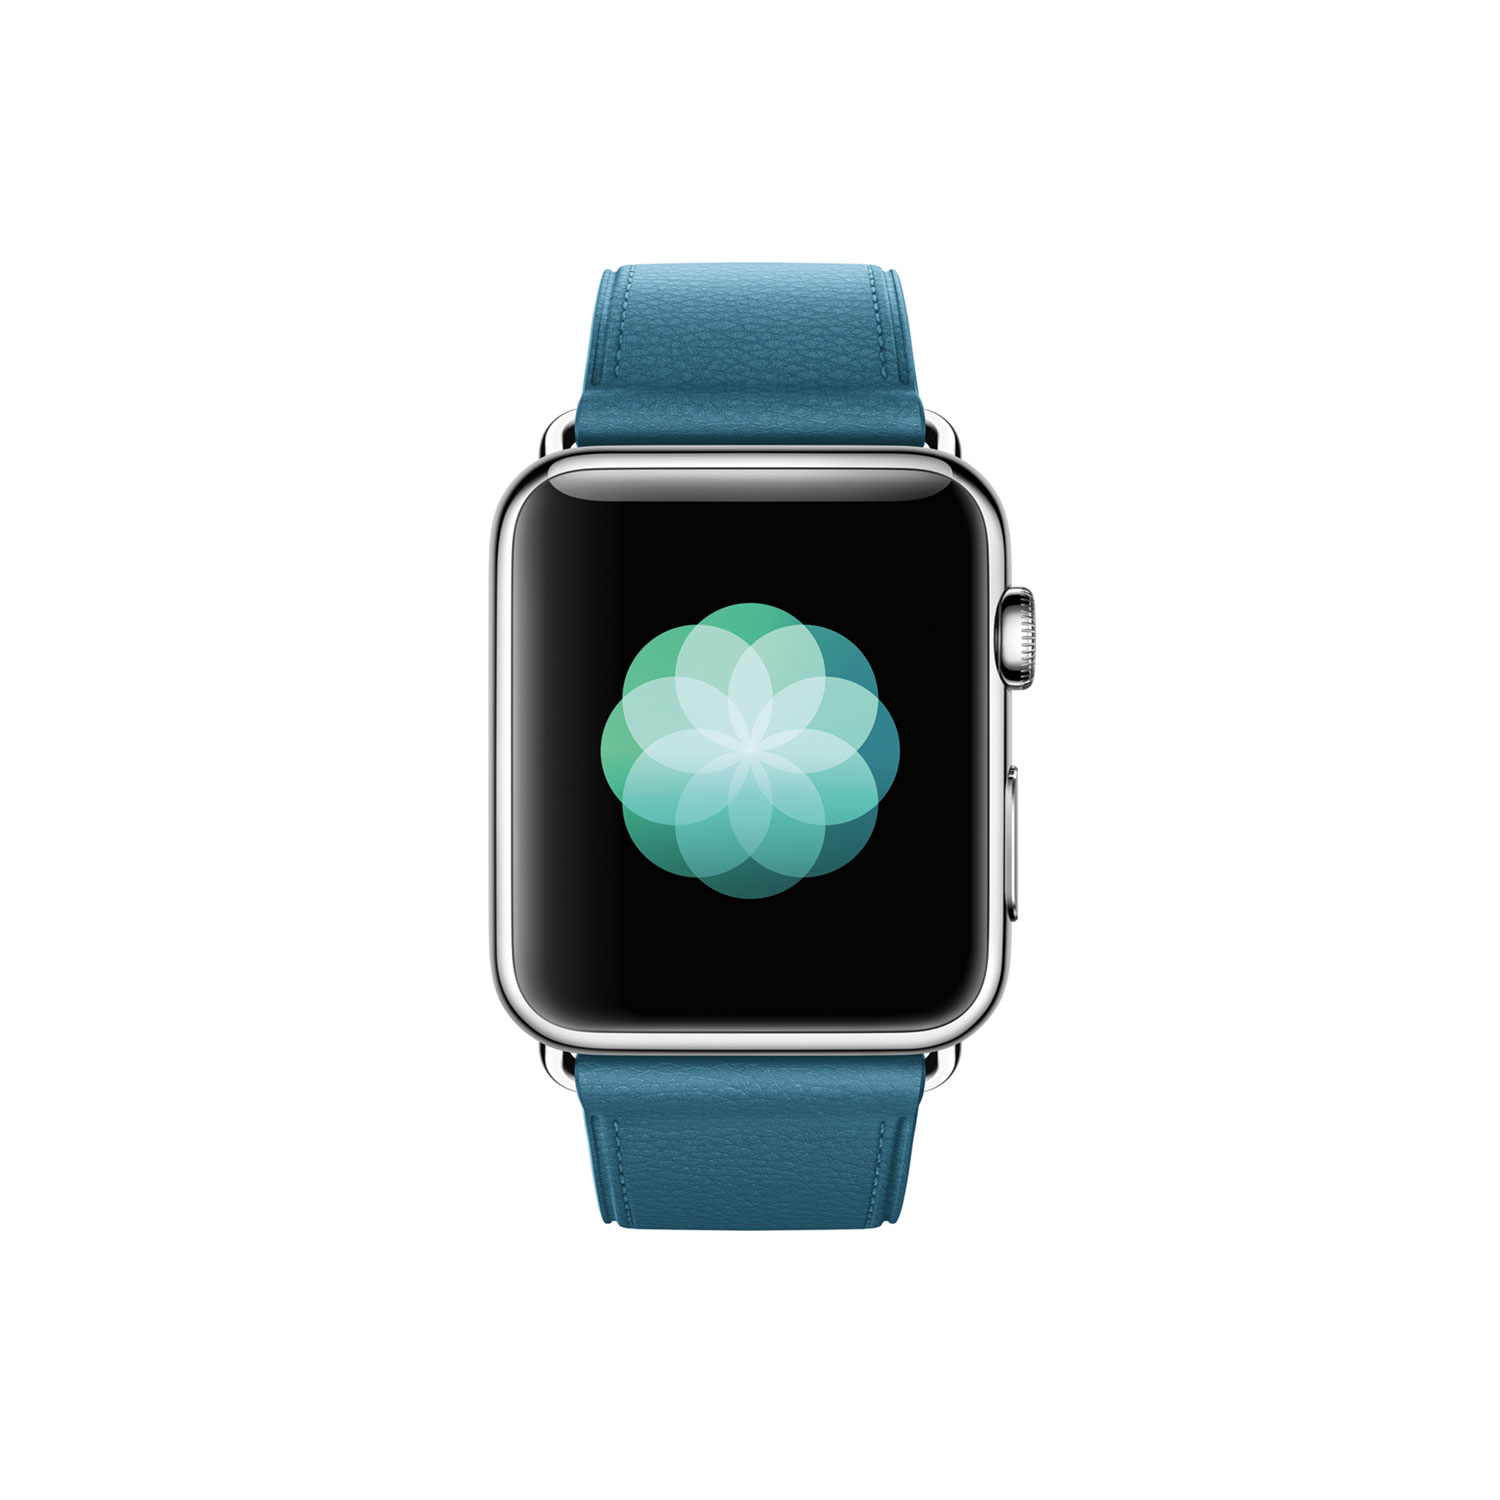 Apple Watch Breath app